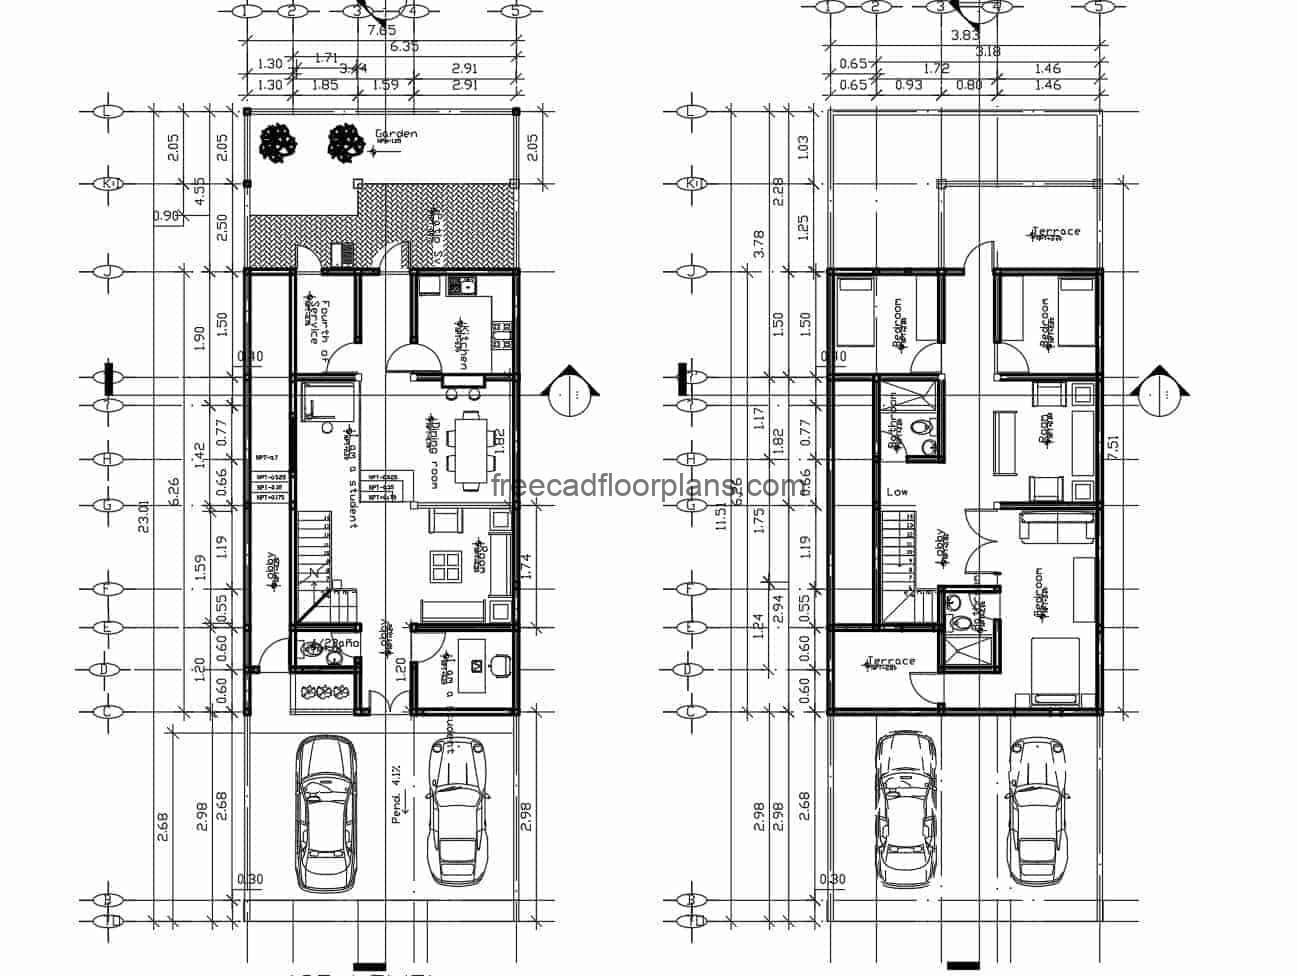 Family residence of two levels for free download, architectural design in DWG plans